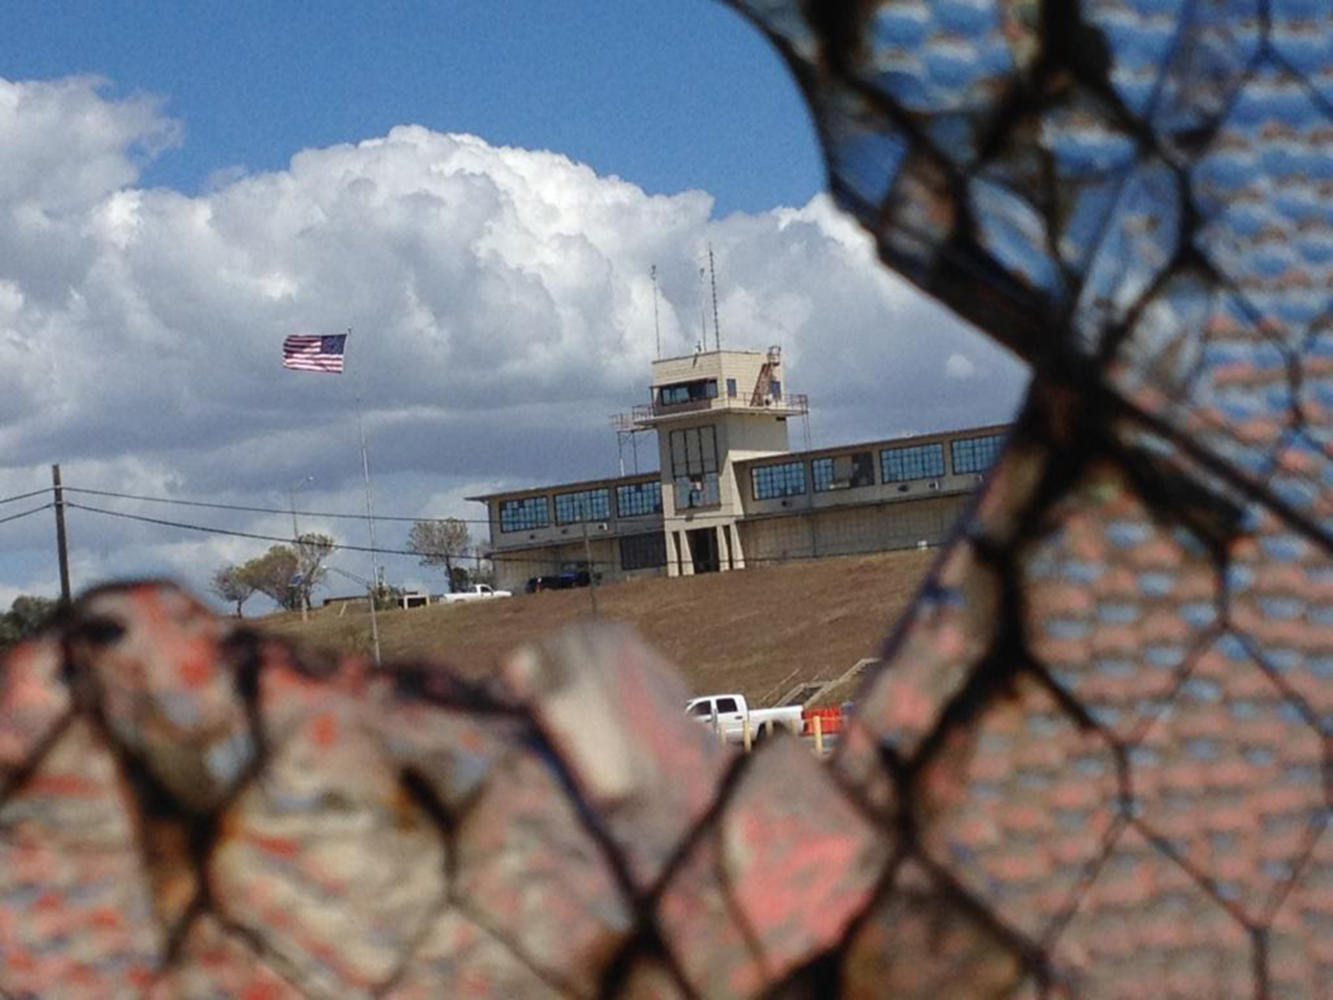 The war court headquarters at Camp Justice, as seen through a broken window at an obsolete air hangar at the U.S. Navy base at Guantanamo Bay, Cuba, on Feb. 28, 2015, in an image approved for release by the U.S. military. Defense lawyers are asking a federal judge to intervene in a ccaptive's Guantanamo medical care. (Carol Rosenberg/Miami Herald/TNS)